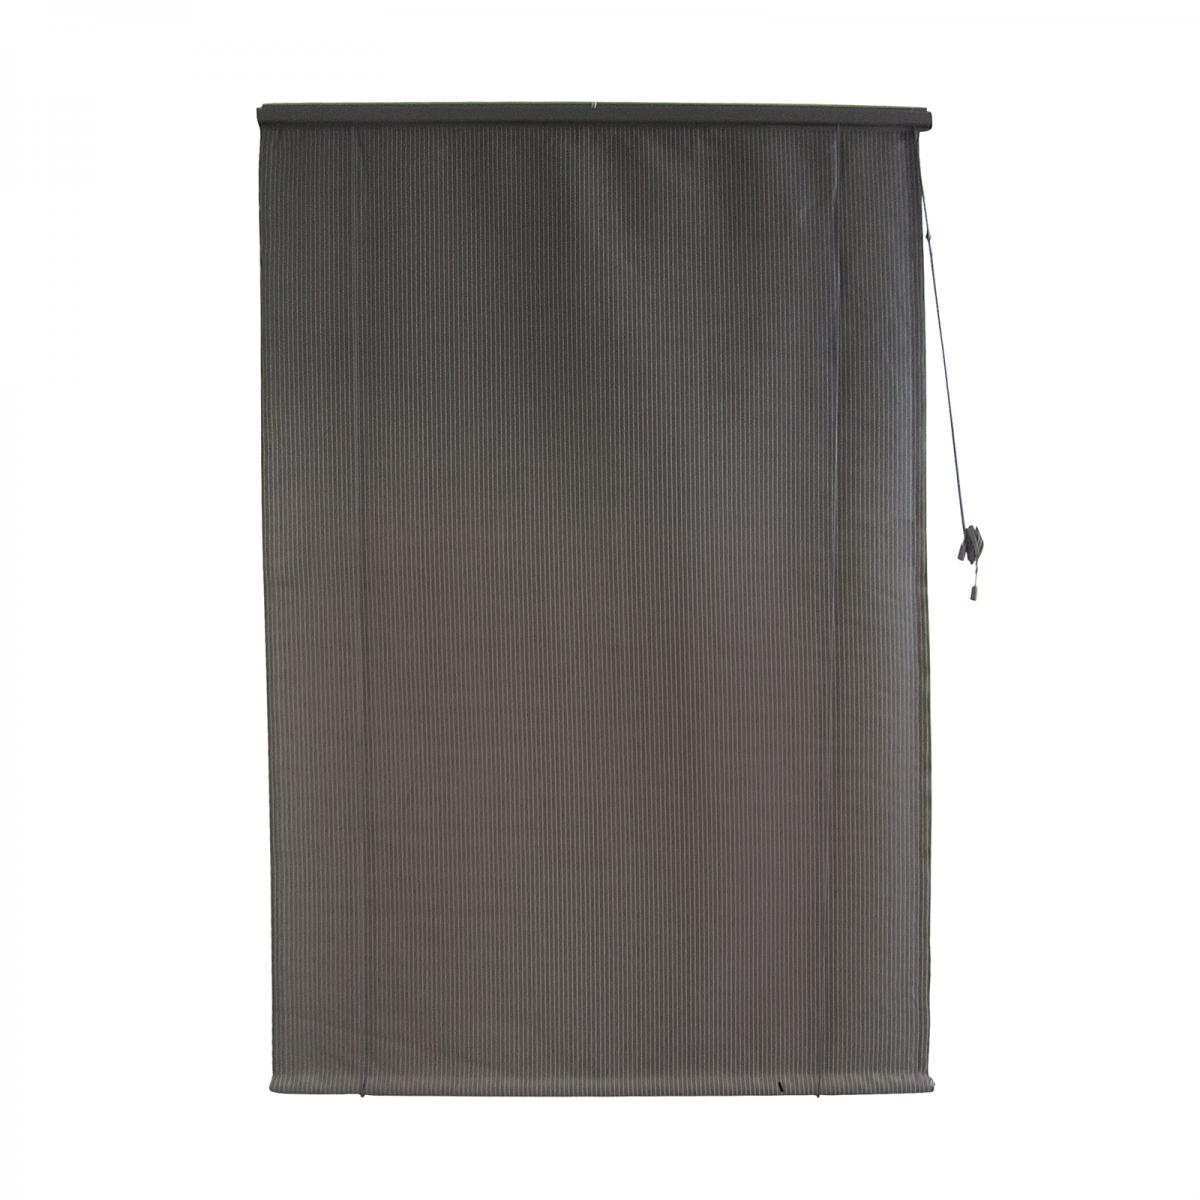 Outdoor Blind Rollup